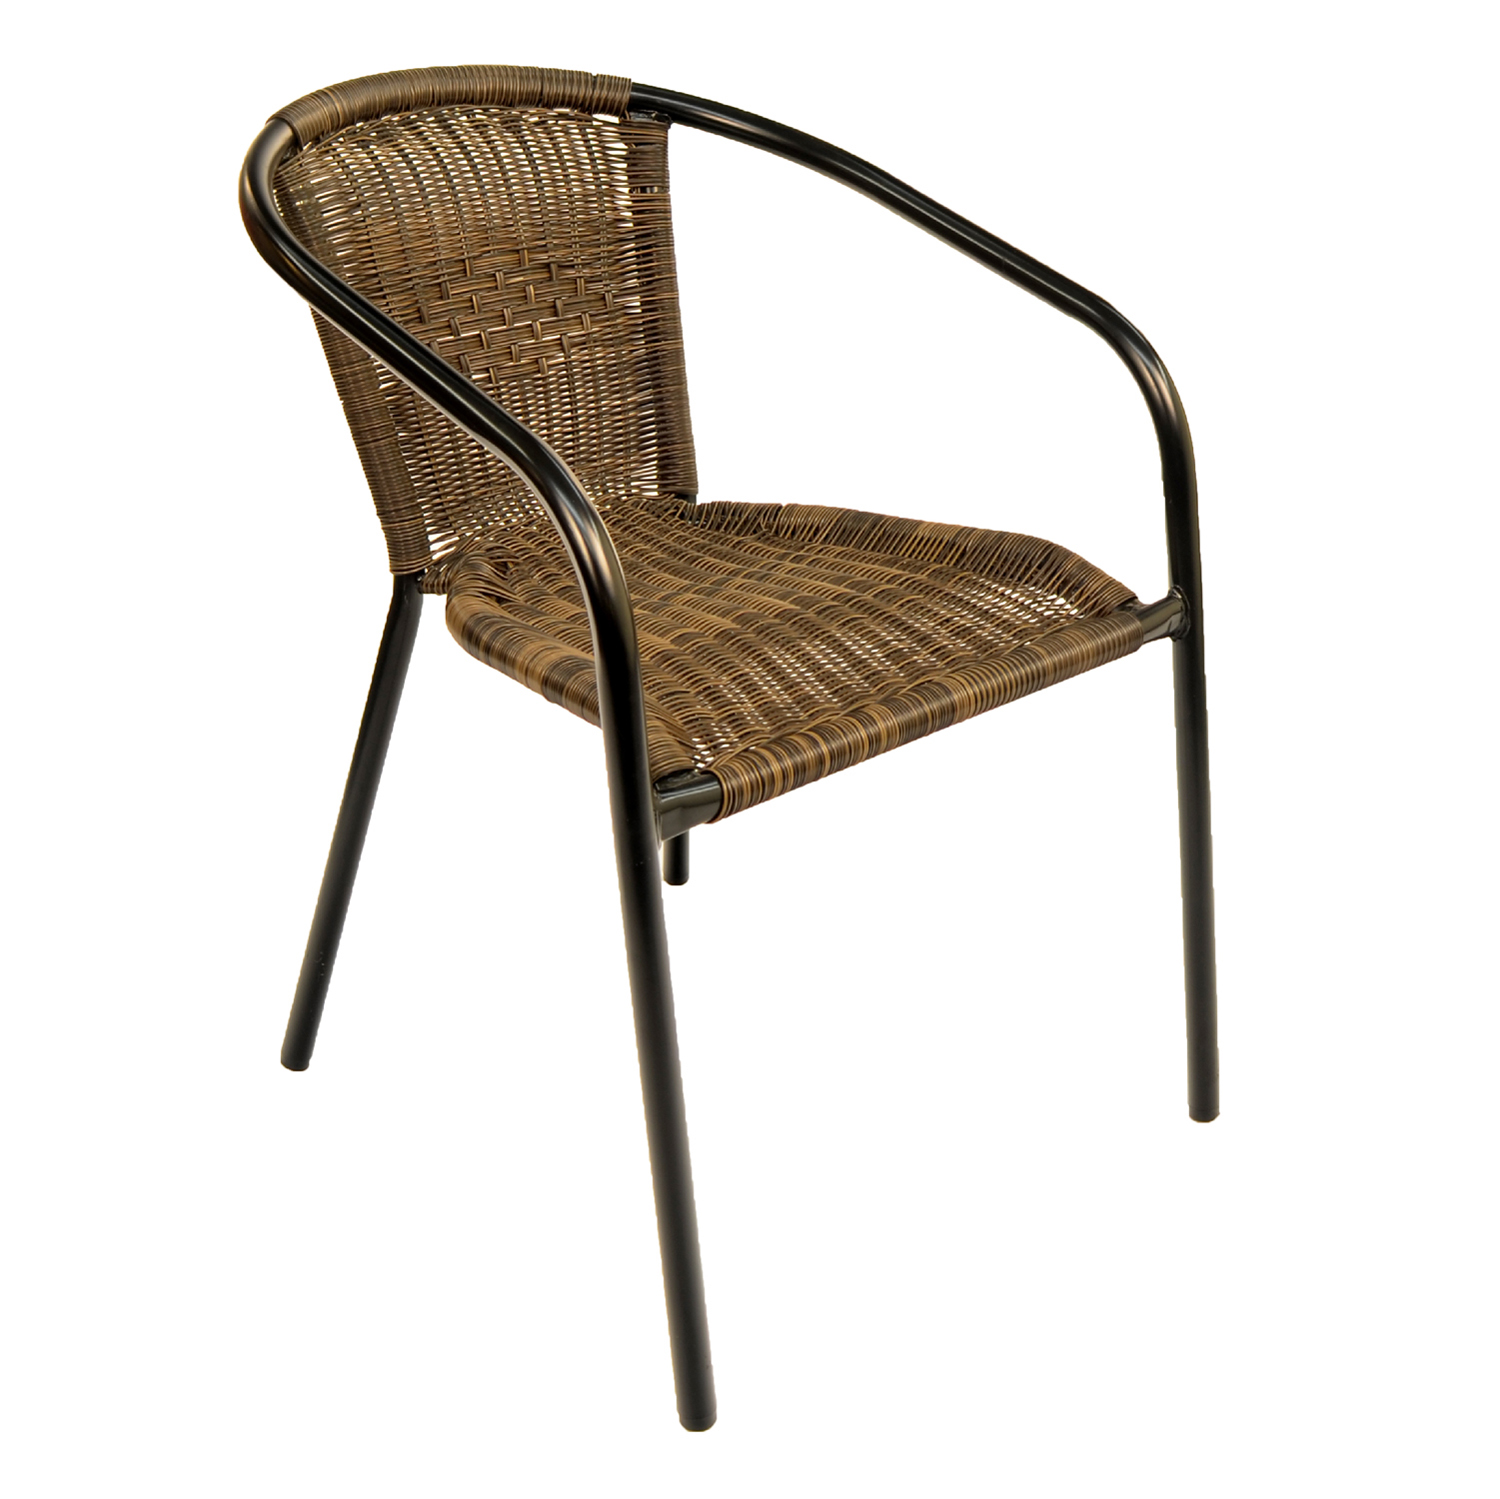 outdoor rattan armchair uk compact folding chair lucerne with 2 san remo chairs